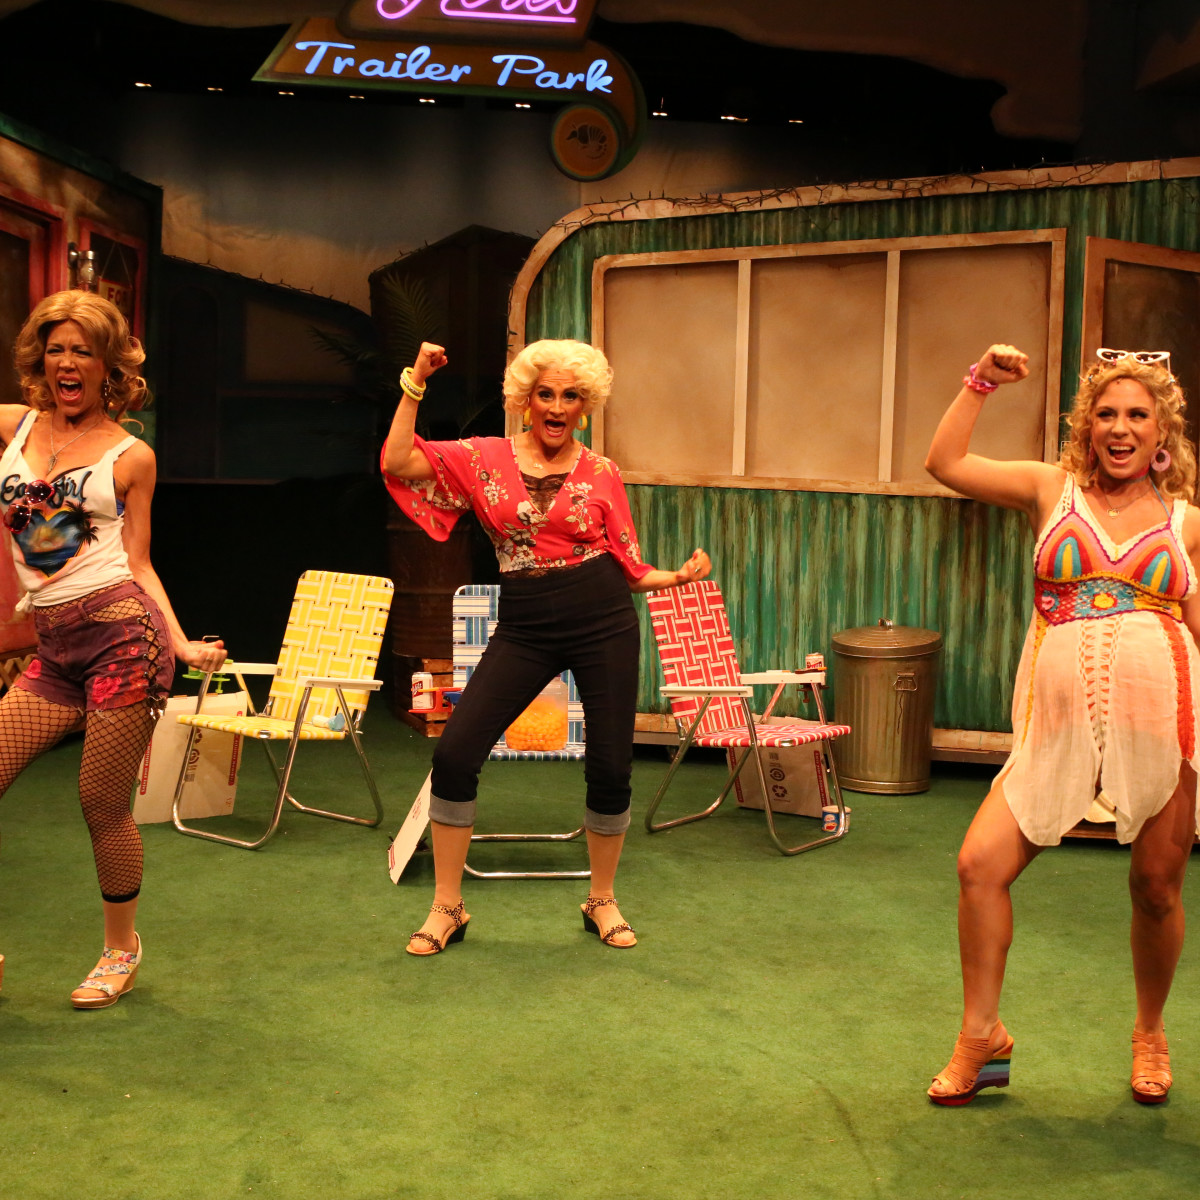 Stages Theatre: Trailer Park, Carolyn Johnson, Susan Koozin and Teresa Zimmermann